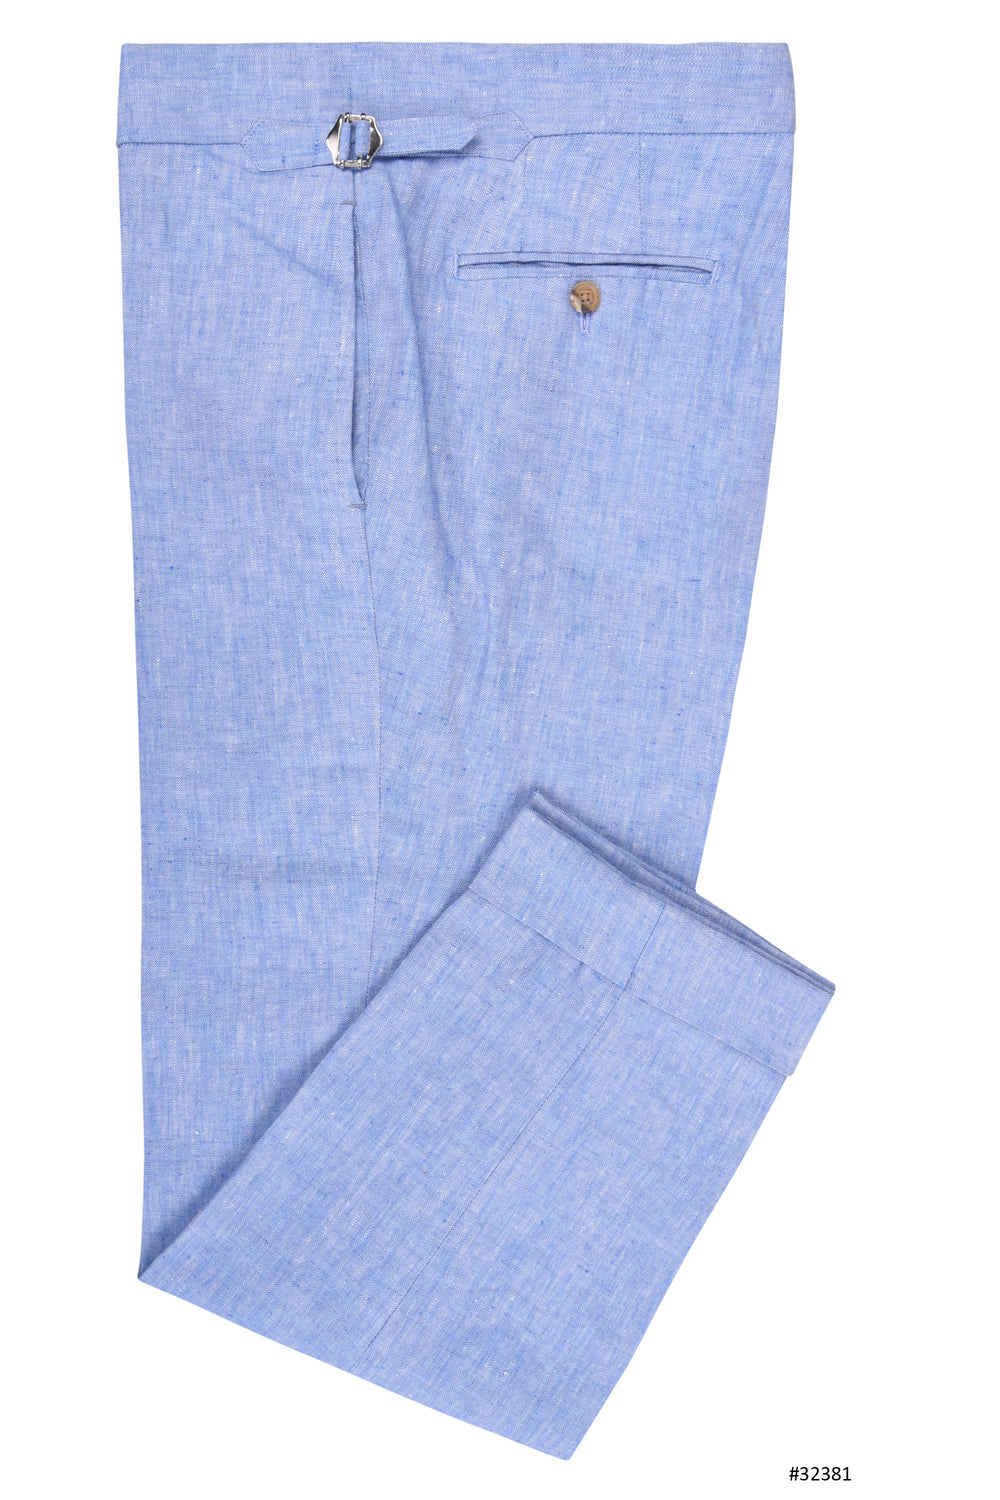 Linen: Herringbone Corn Flower Blue